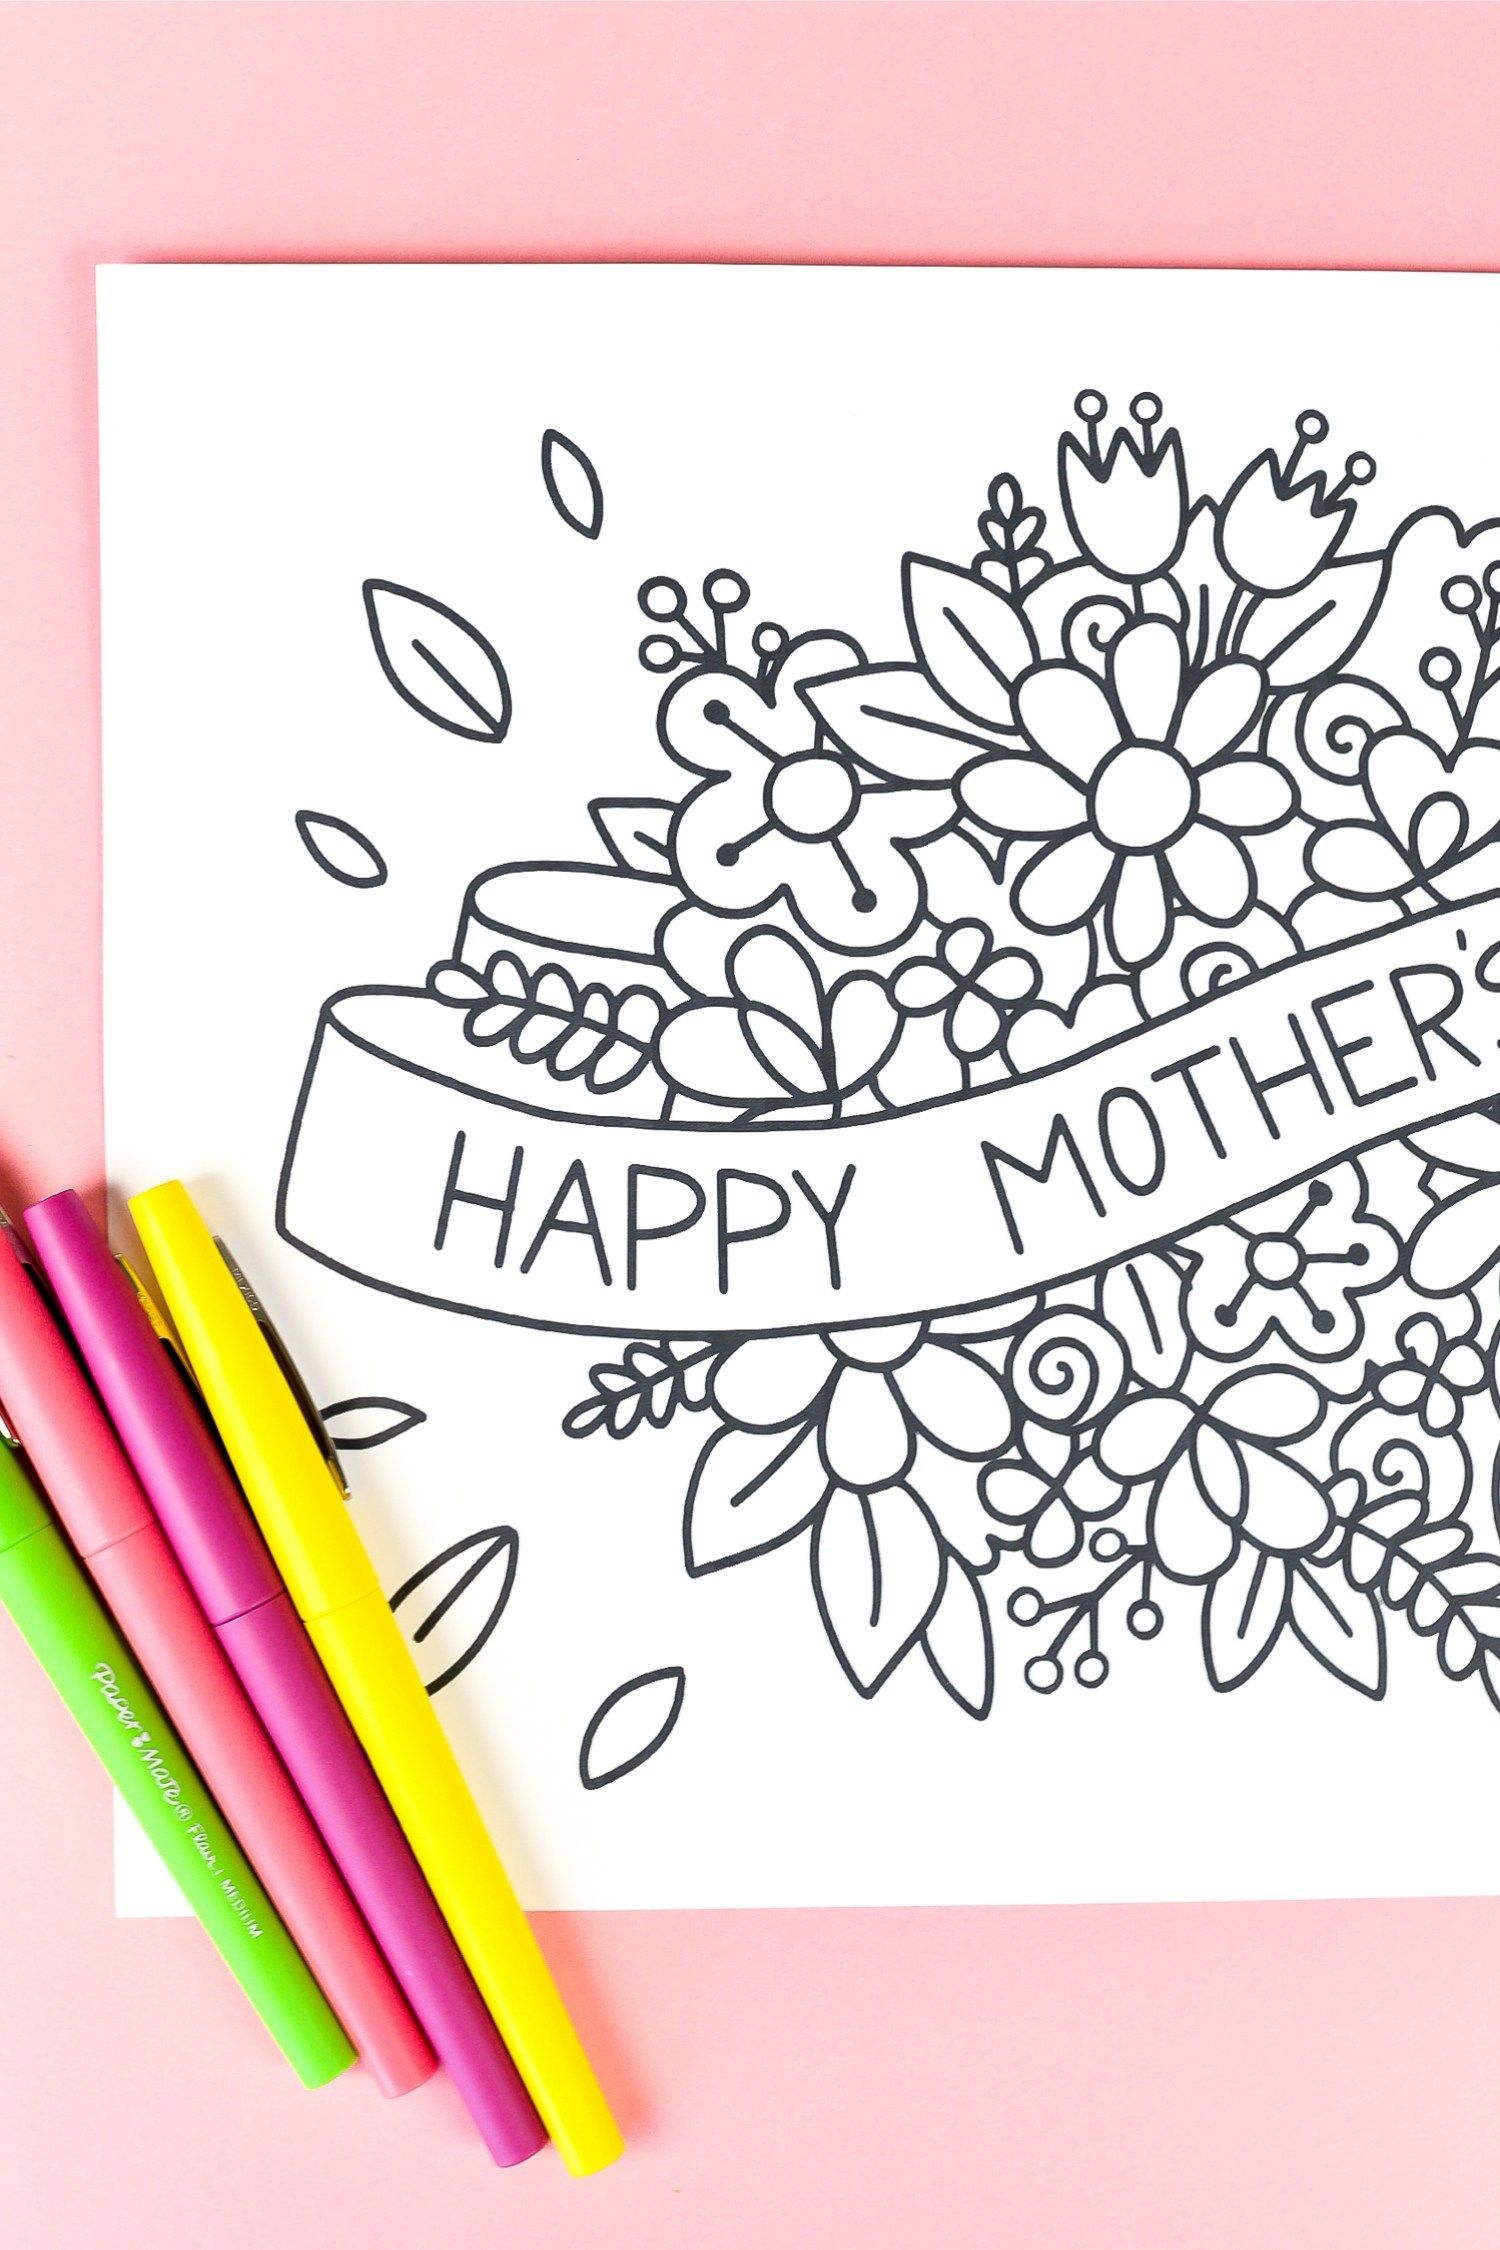 Disney Svg Files And Cricut Crafts Hey Let S Make Stuff Mothers Day Coloring Pages Mothers Day Cards Printable Funny Printable Birthday Cards